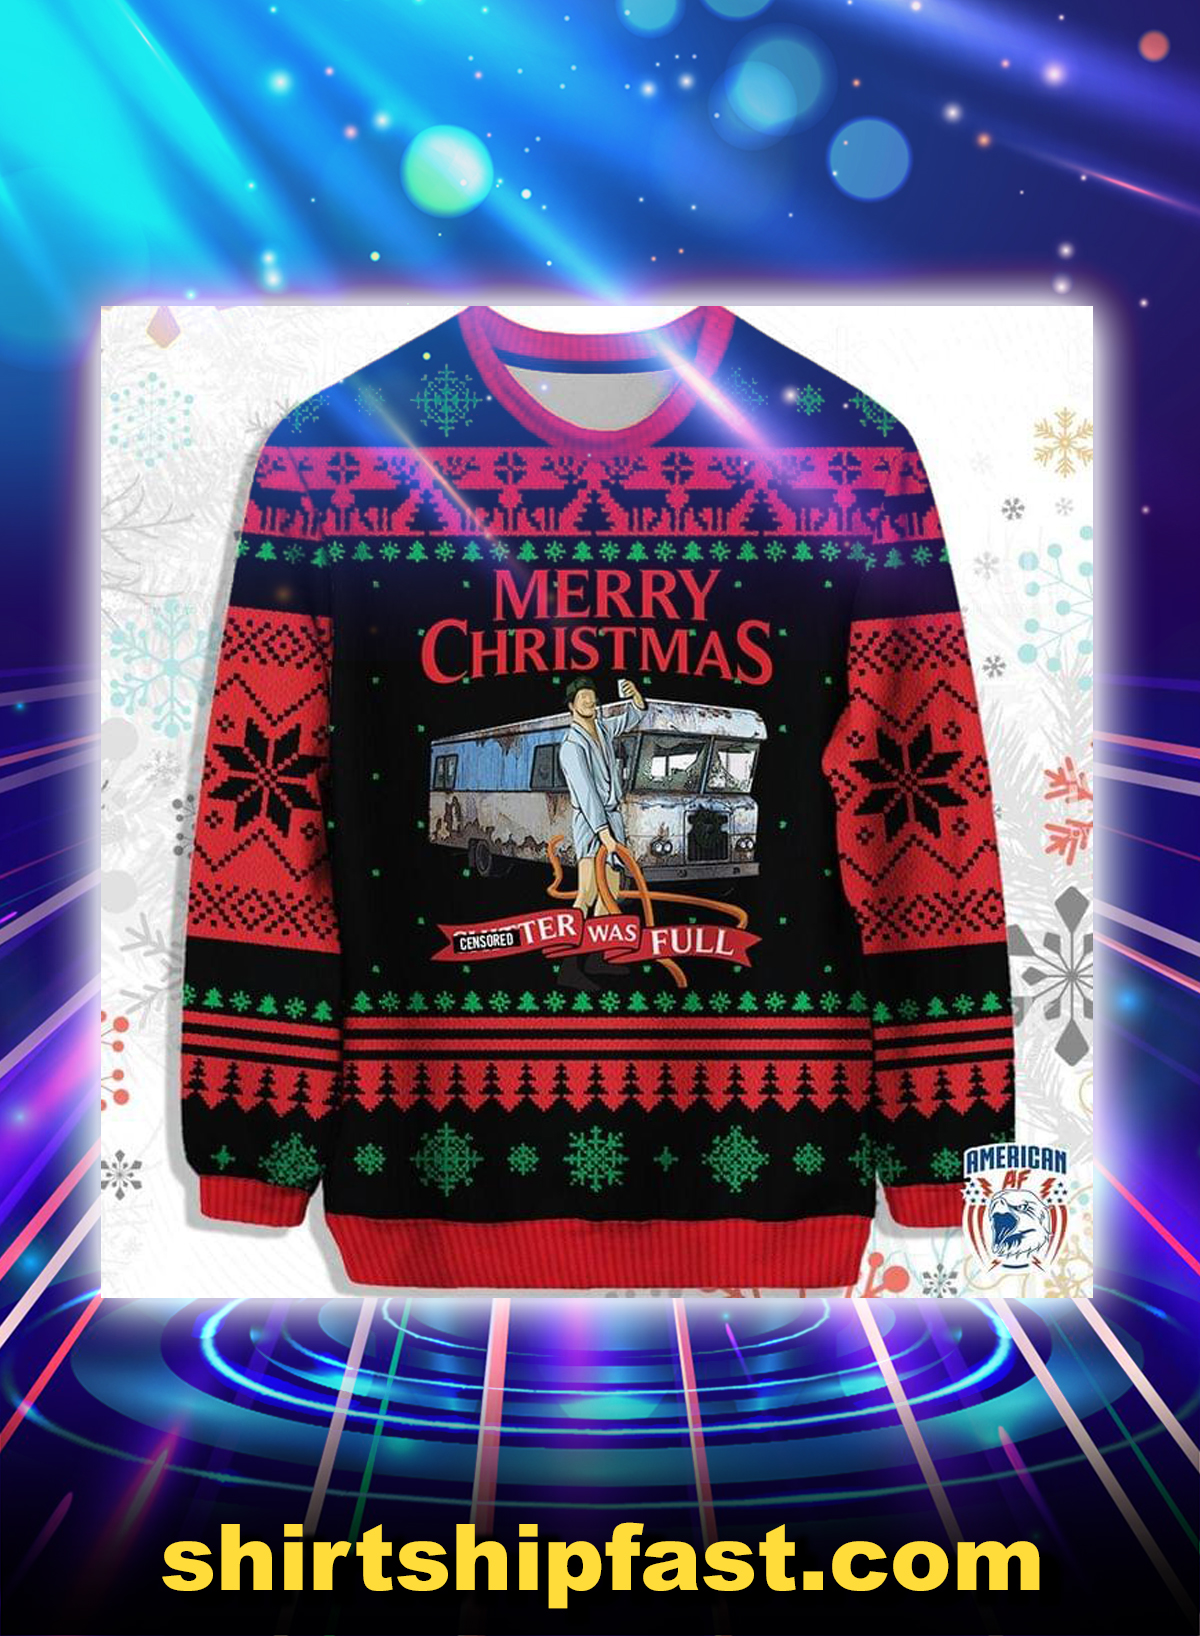 Merry christmas clutter was full ugly christmas sweater - Picture 1